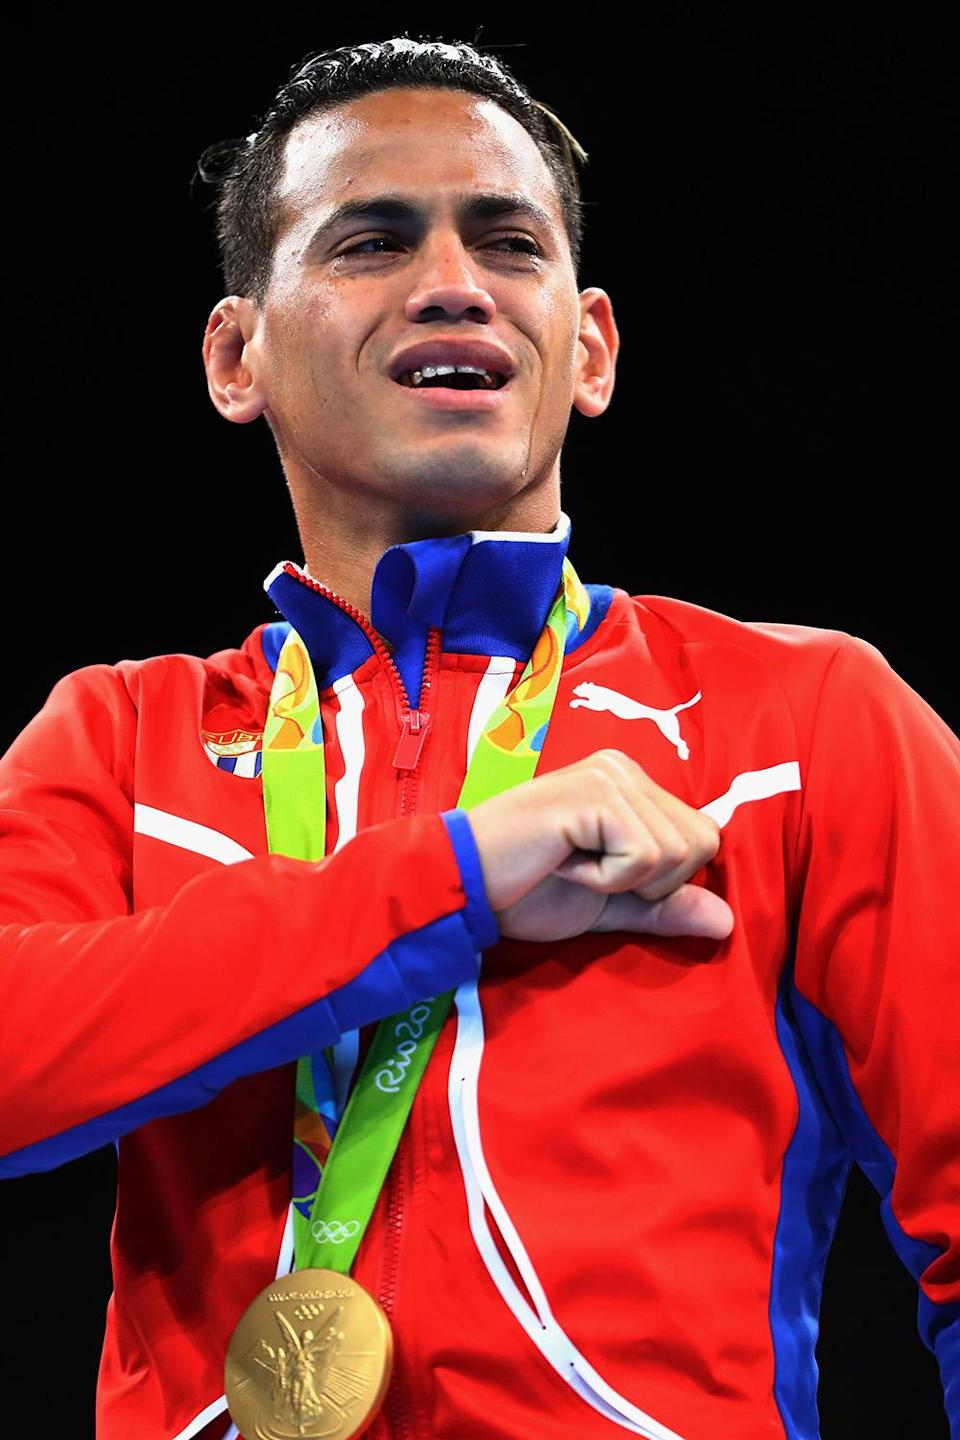 <p>Gold medalist Robeisy Ramirez of Cuba poses during the medal ceremony for the Men's Bantam (56kg) on Day 15 of the Rio 2016 Olympic Games at Riocentro – Pavilion 6 on August 20, 2016 in Rio de Janeiro, Brazil. (Photo by Dean Mouhtaropoulos/Getty Images) </p>